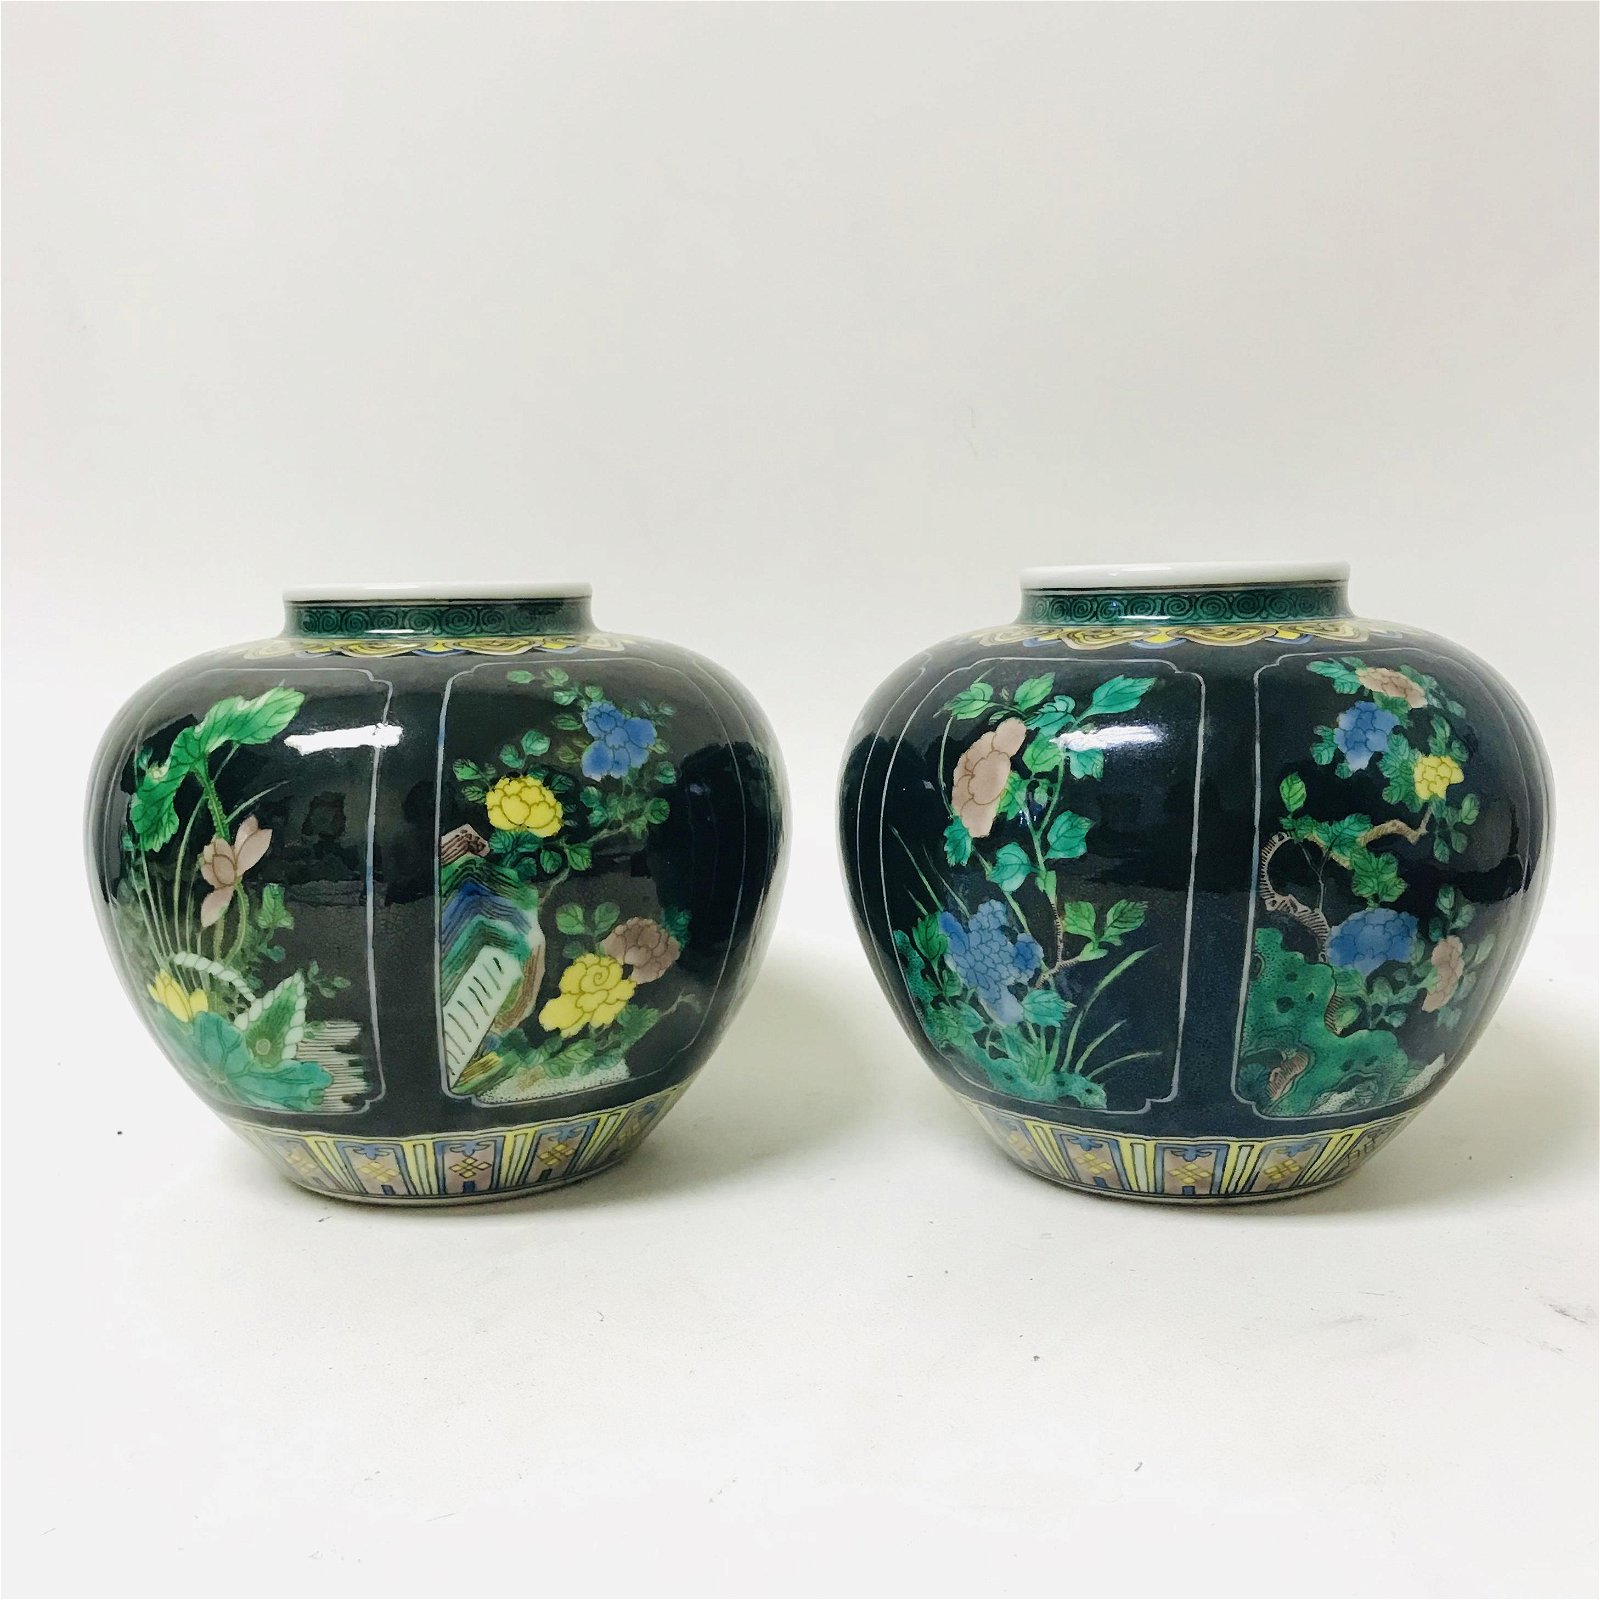 A pair of 19th century black ground multicolored